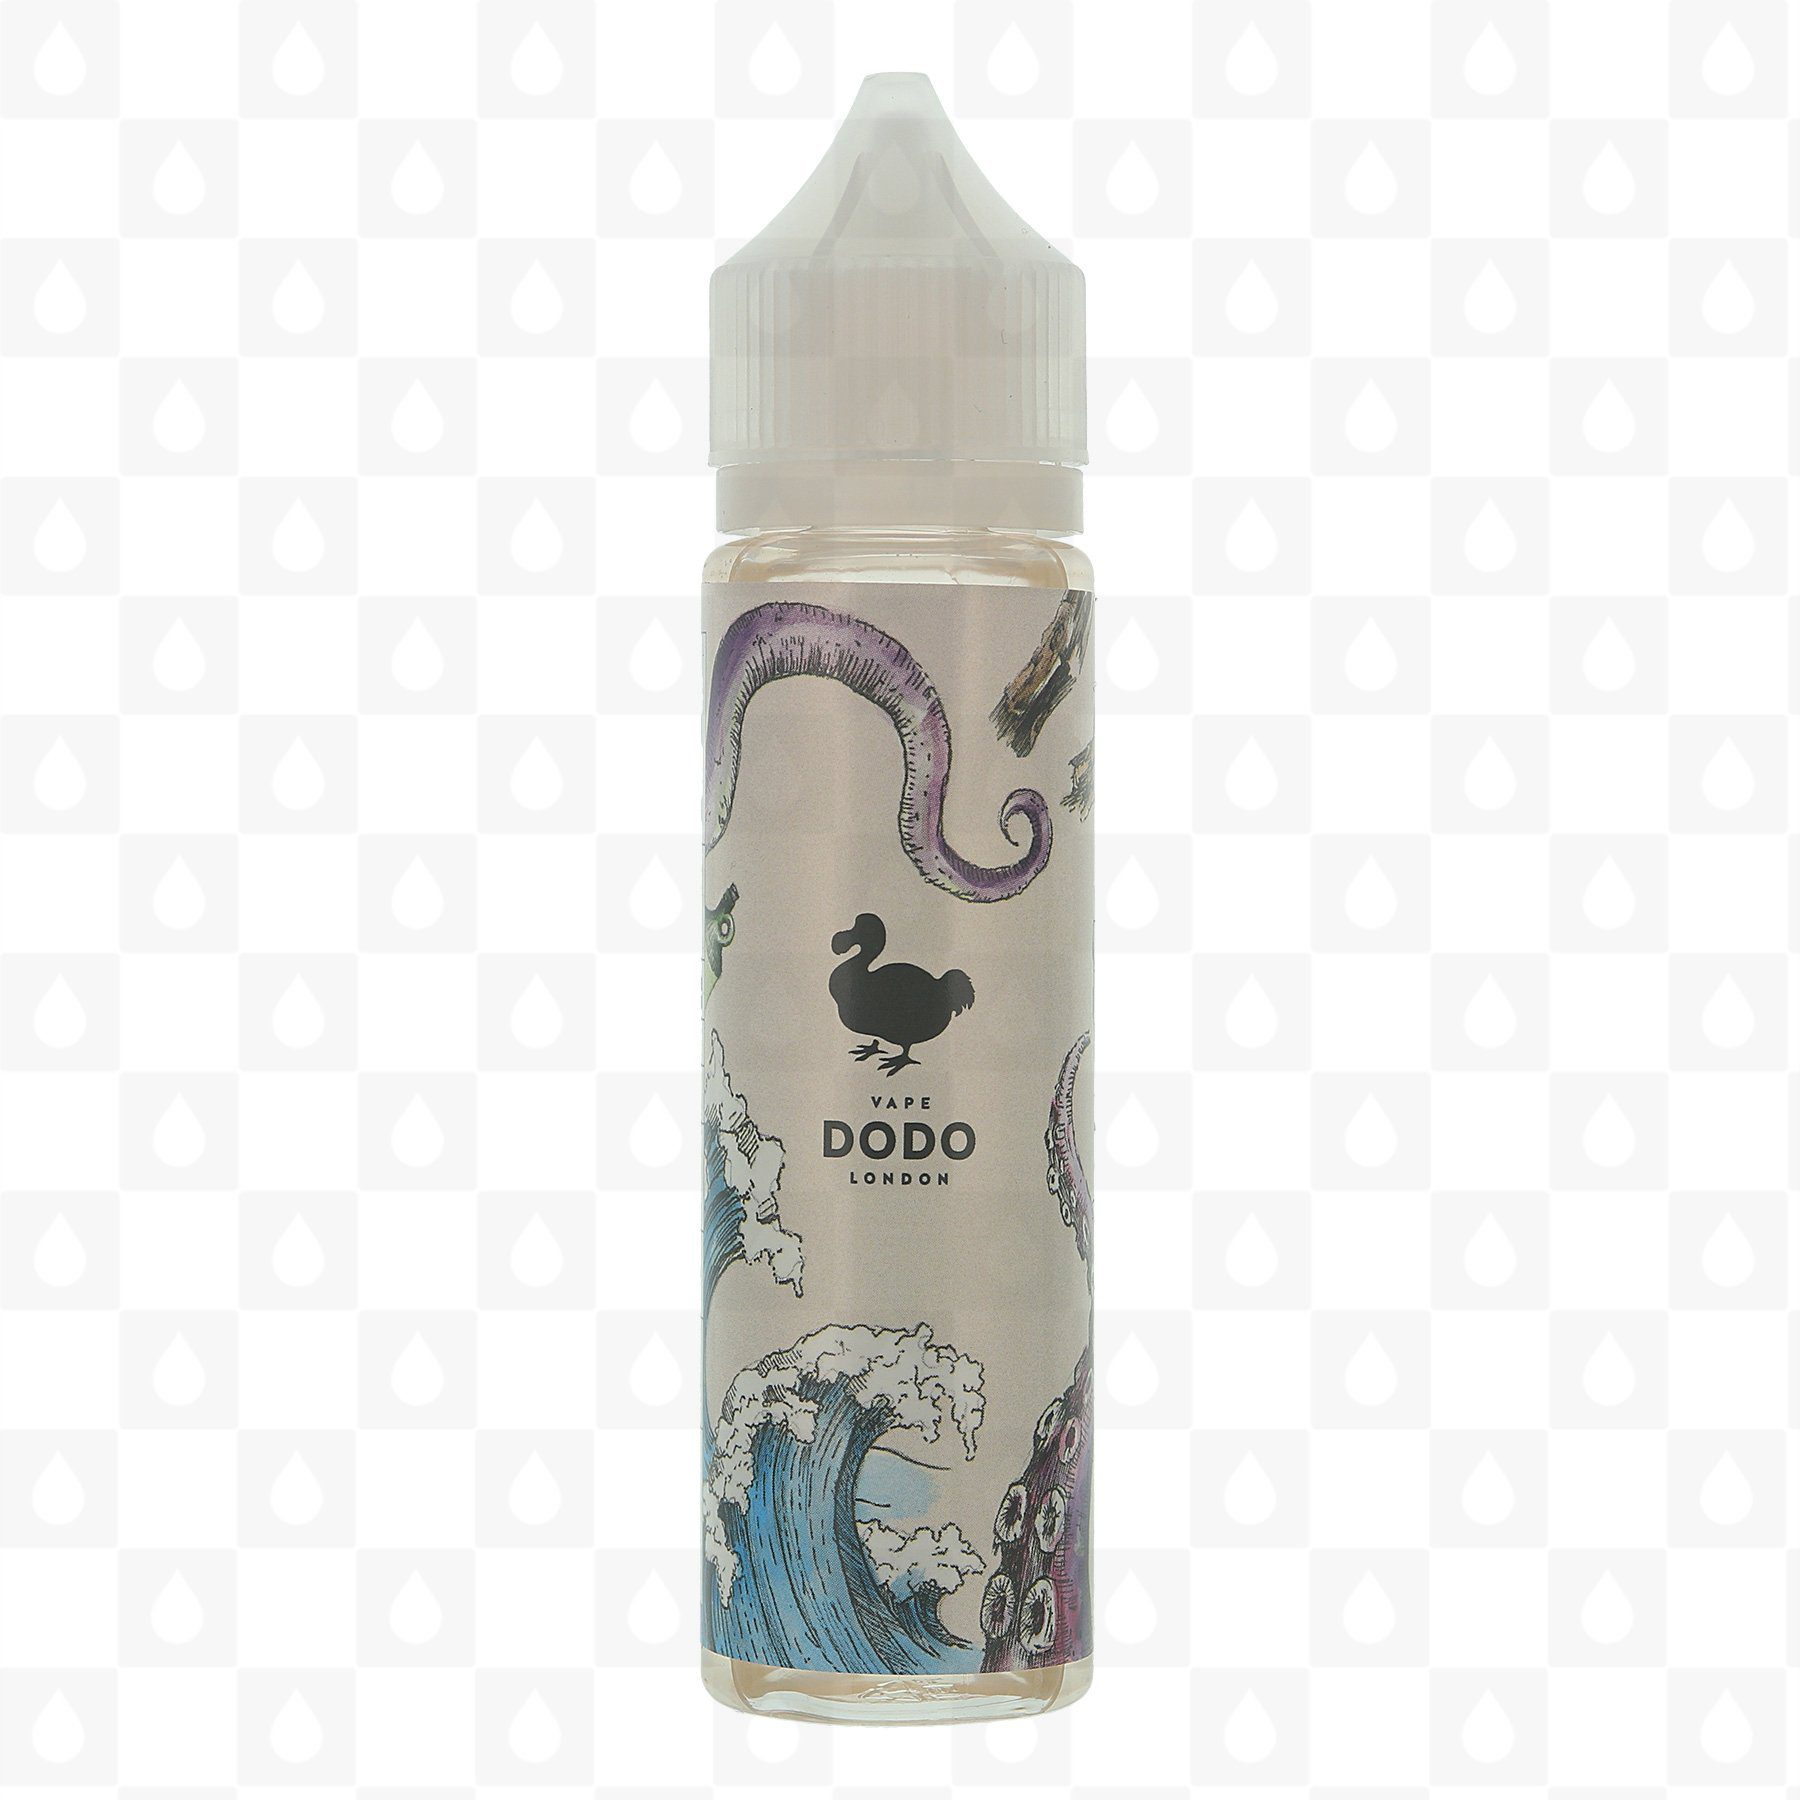 Vape Dodo Raspberry Moonshine 50ml Shortfill E-Liquid